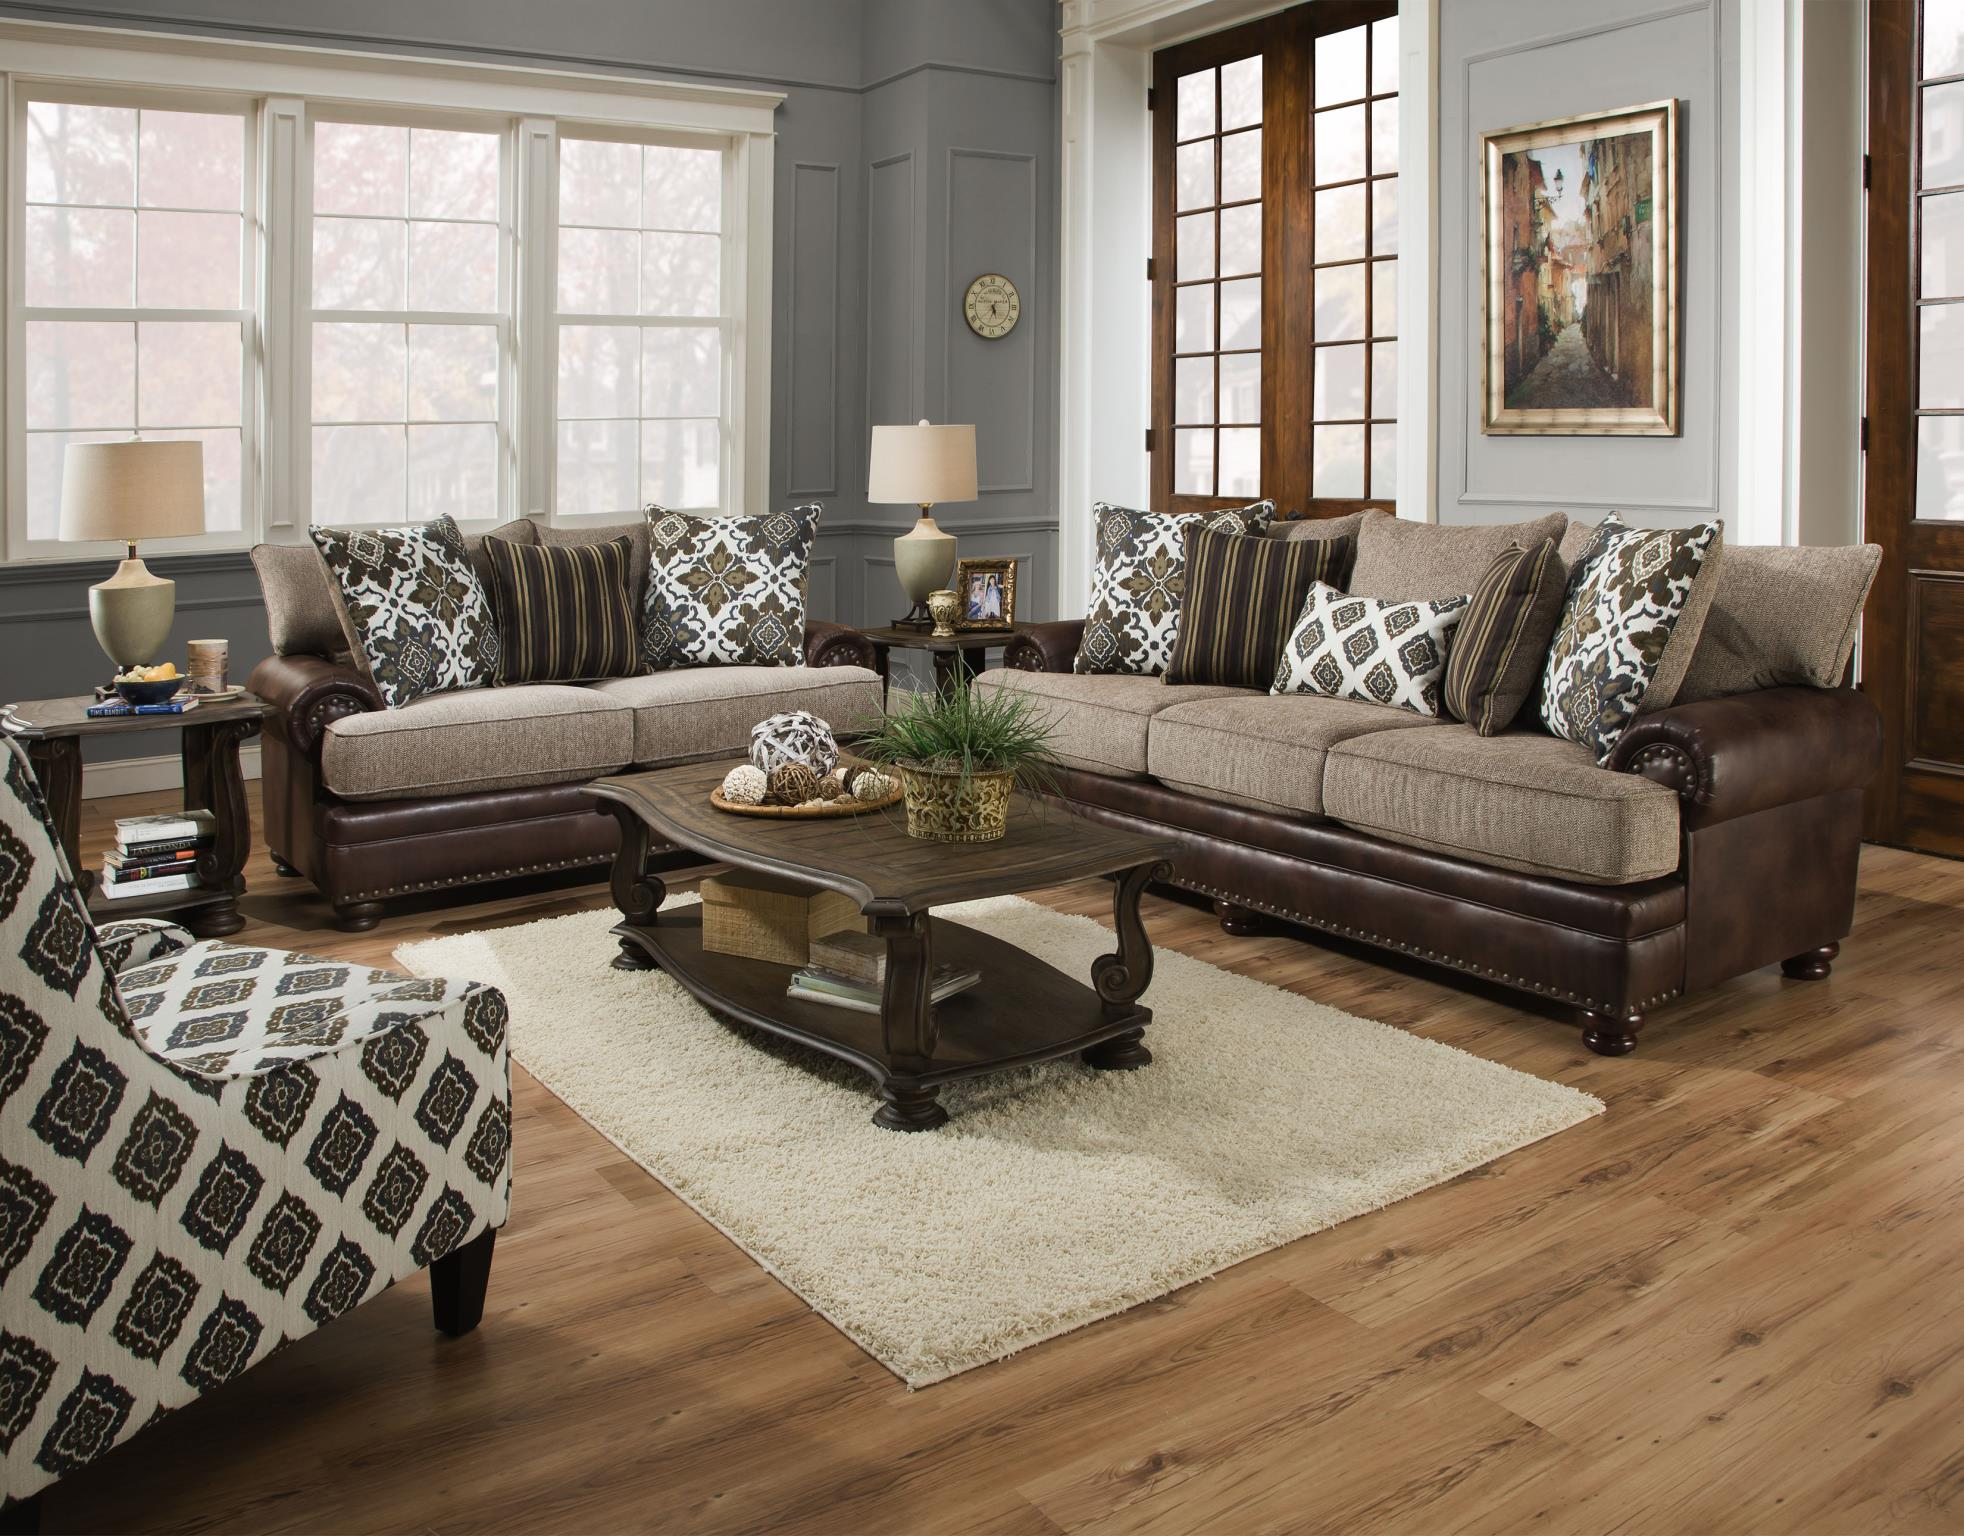 WAREHOUSE PRICE: $1399 | MONTHLY PAYMENT: $29 O.A.C